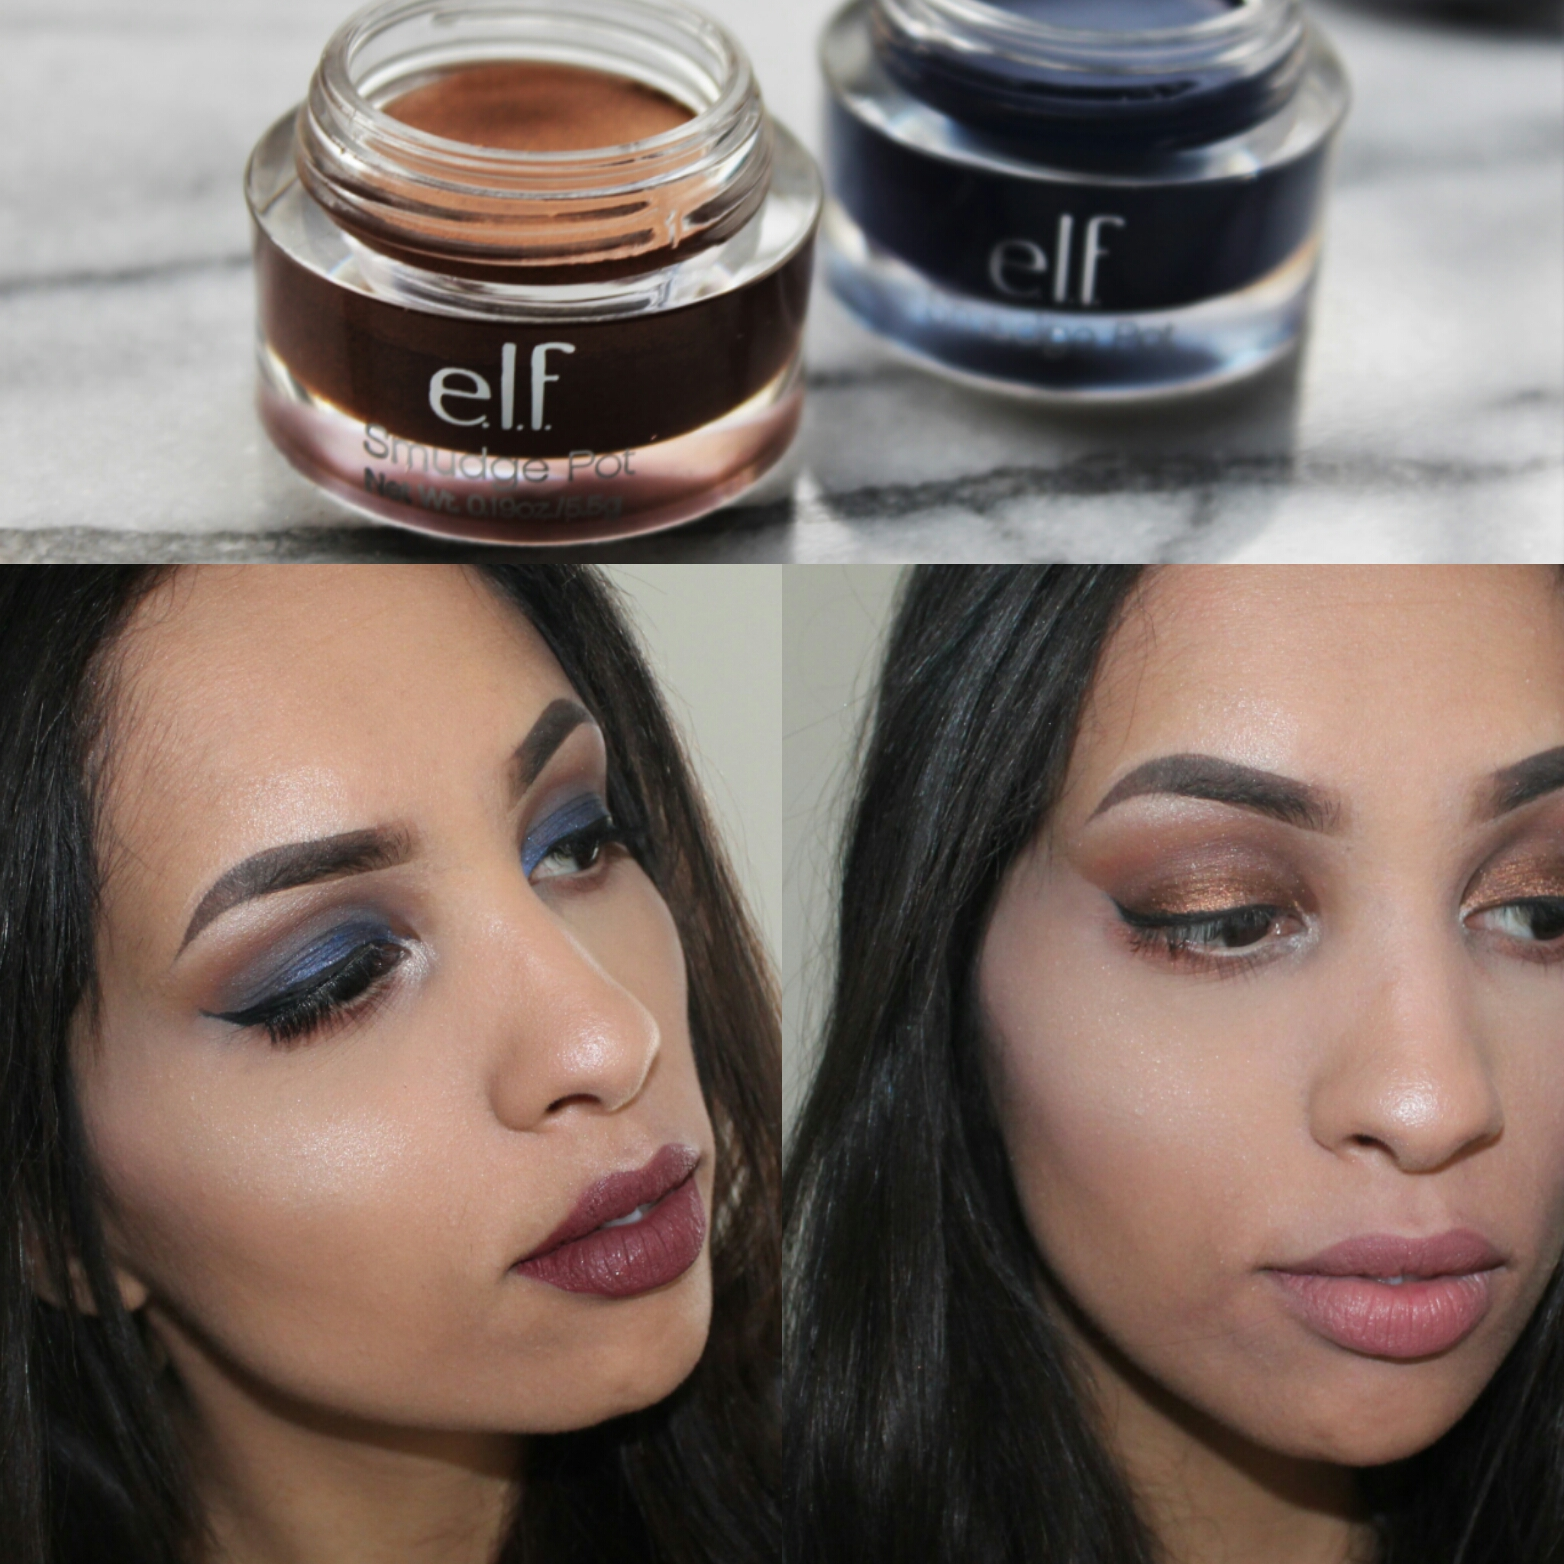 ELF review & looks | Glam vs Nude